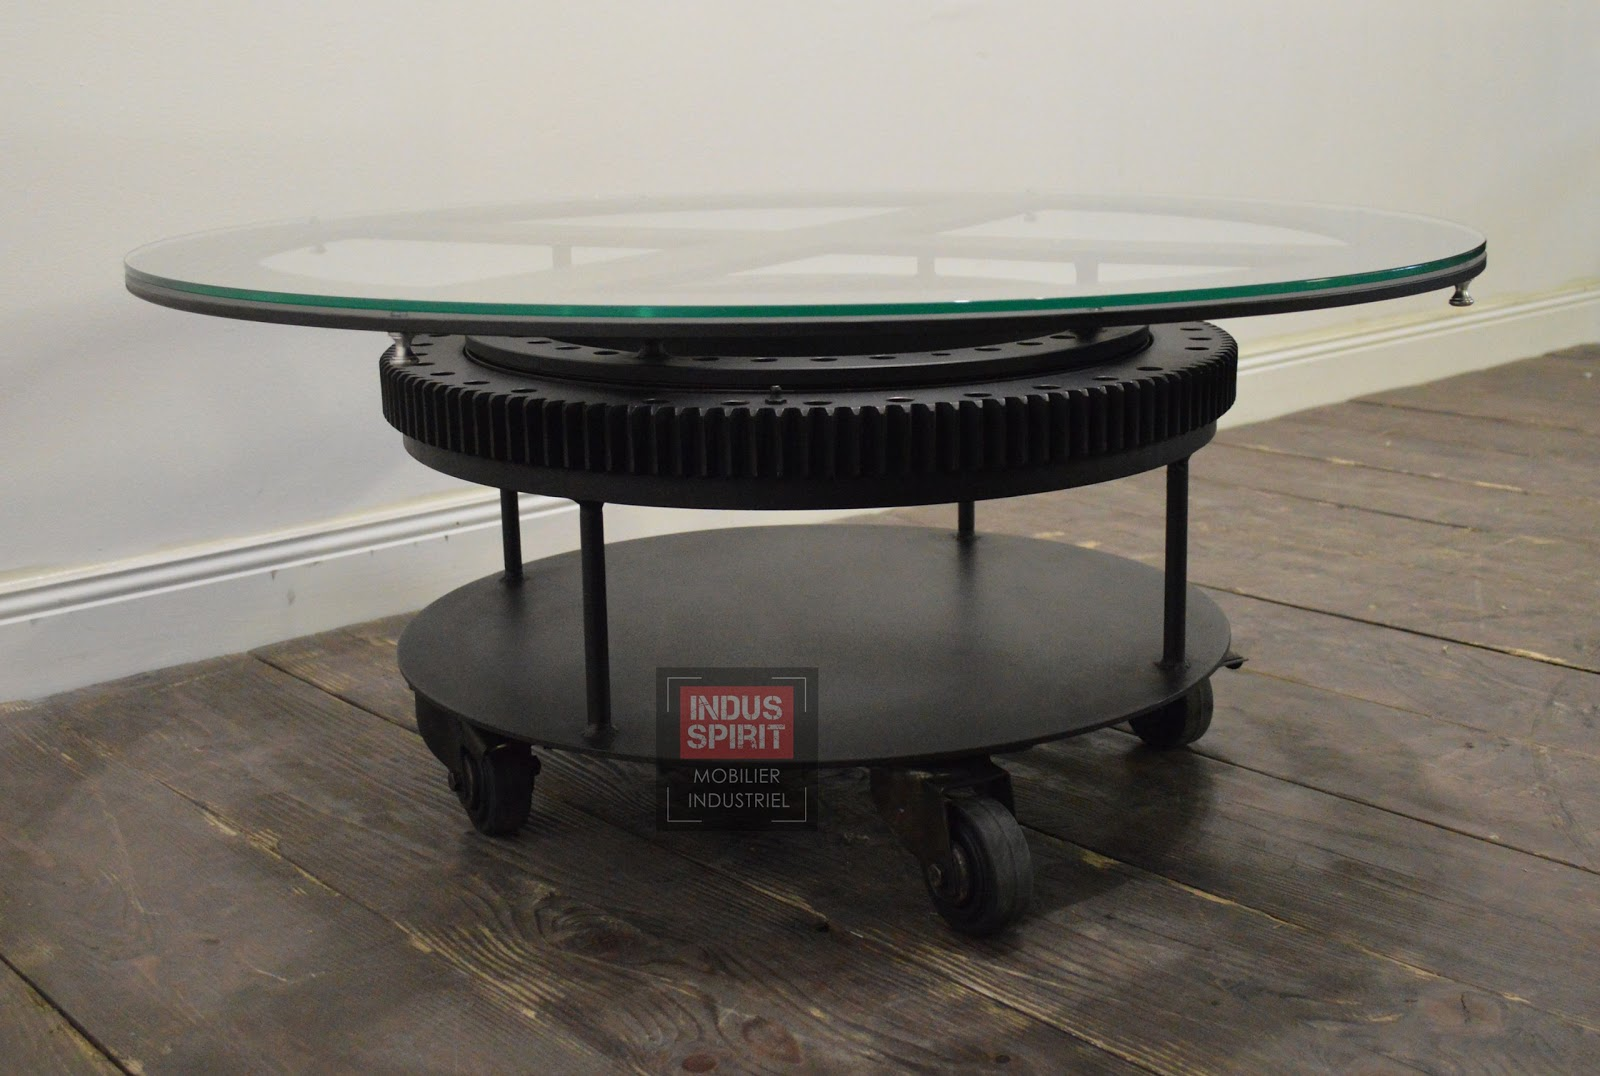 Table basse industrielle verre et m tal - Table basse verre roulette industrielle ...